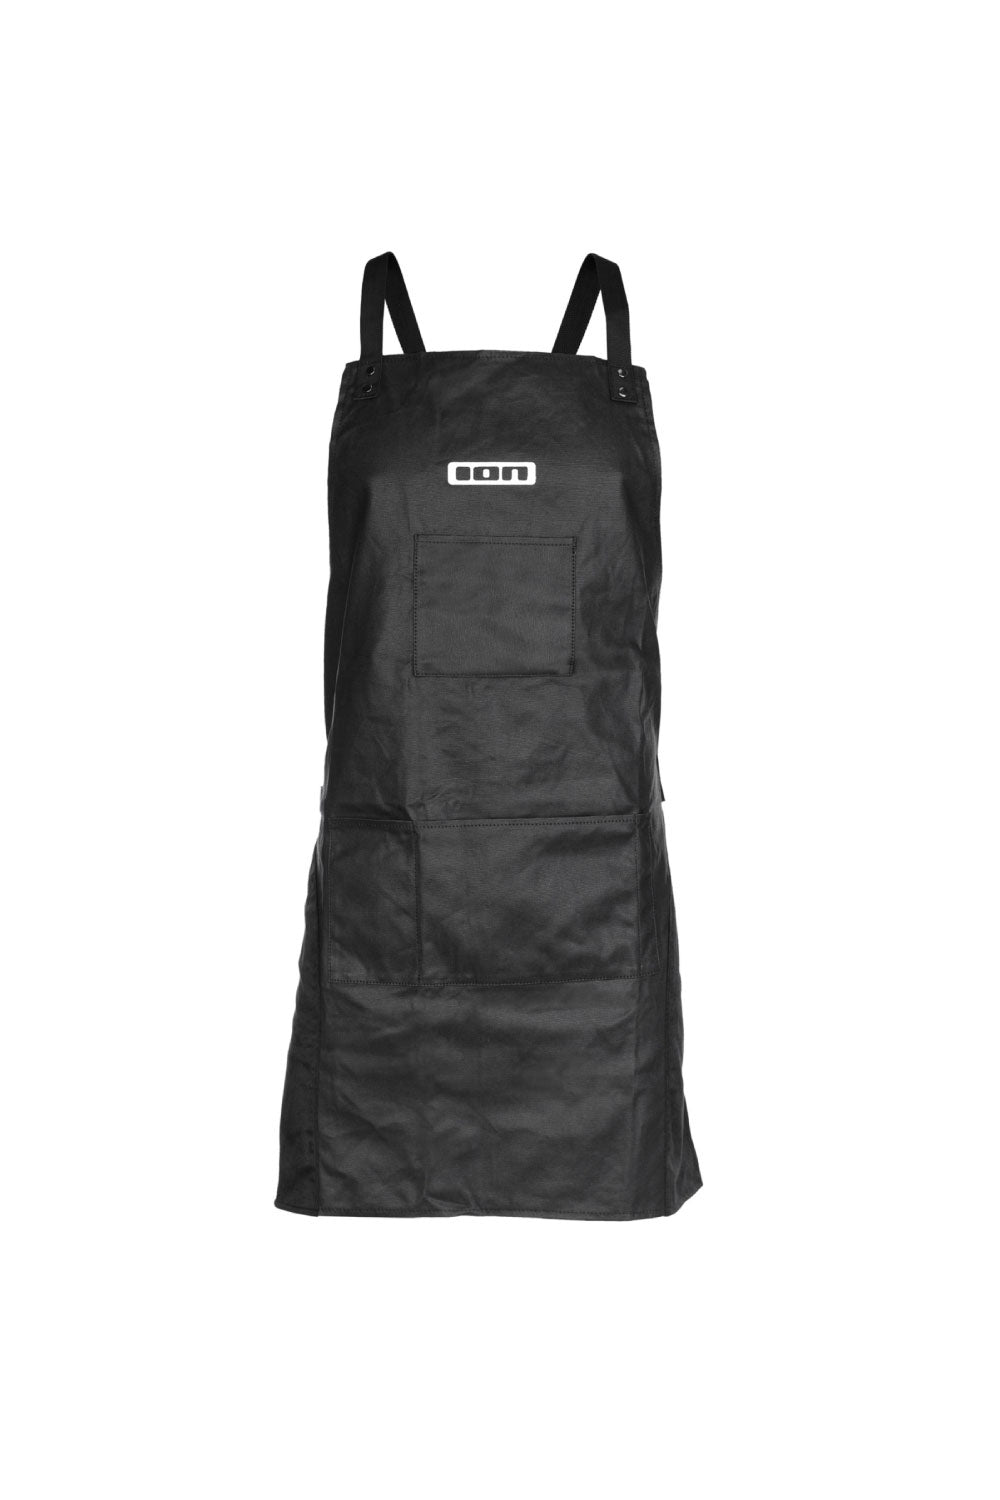 ION Bike Workshop Apron Black